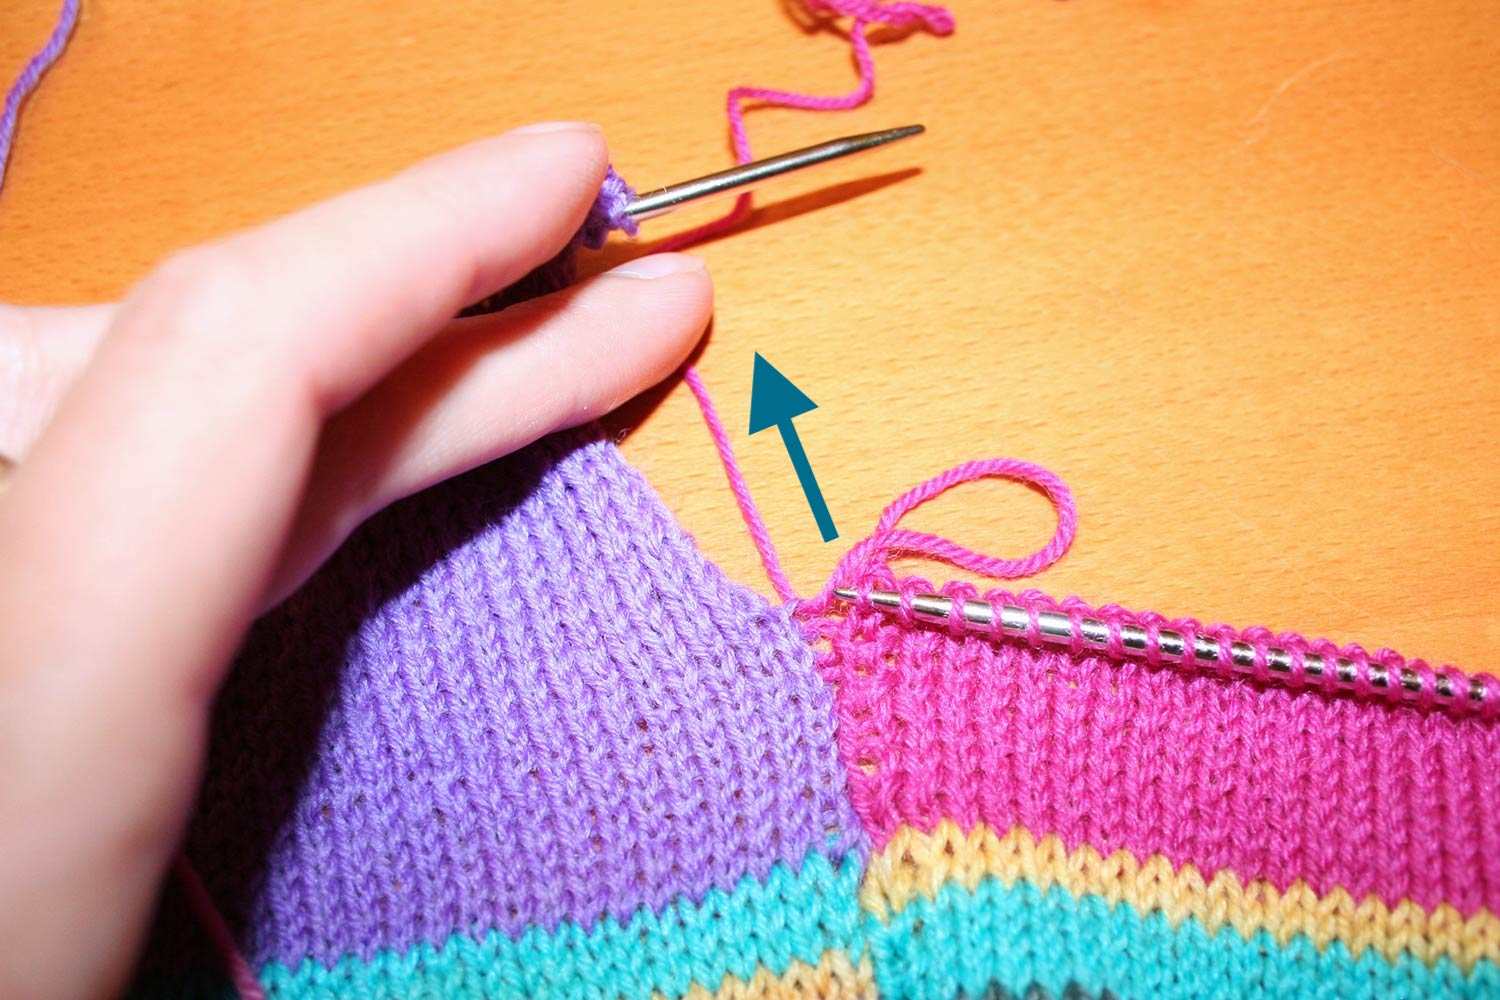 With right side showing, right side row is complete and an arrow indicates the direction to pull the yarn to tighten up the slack on the large loop.